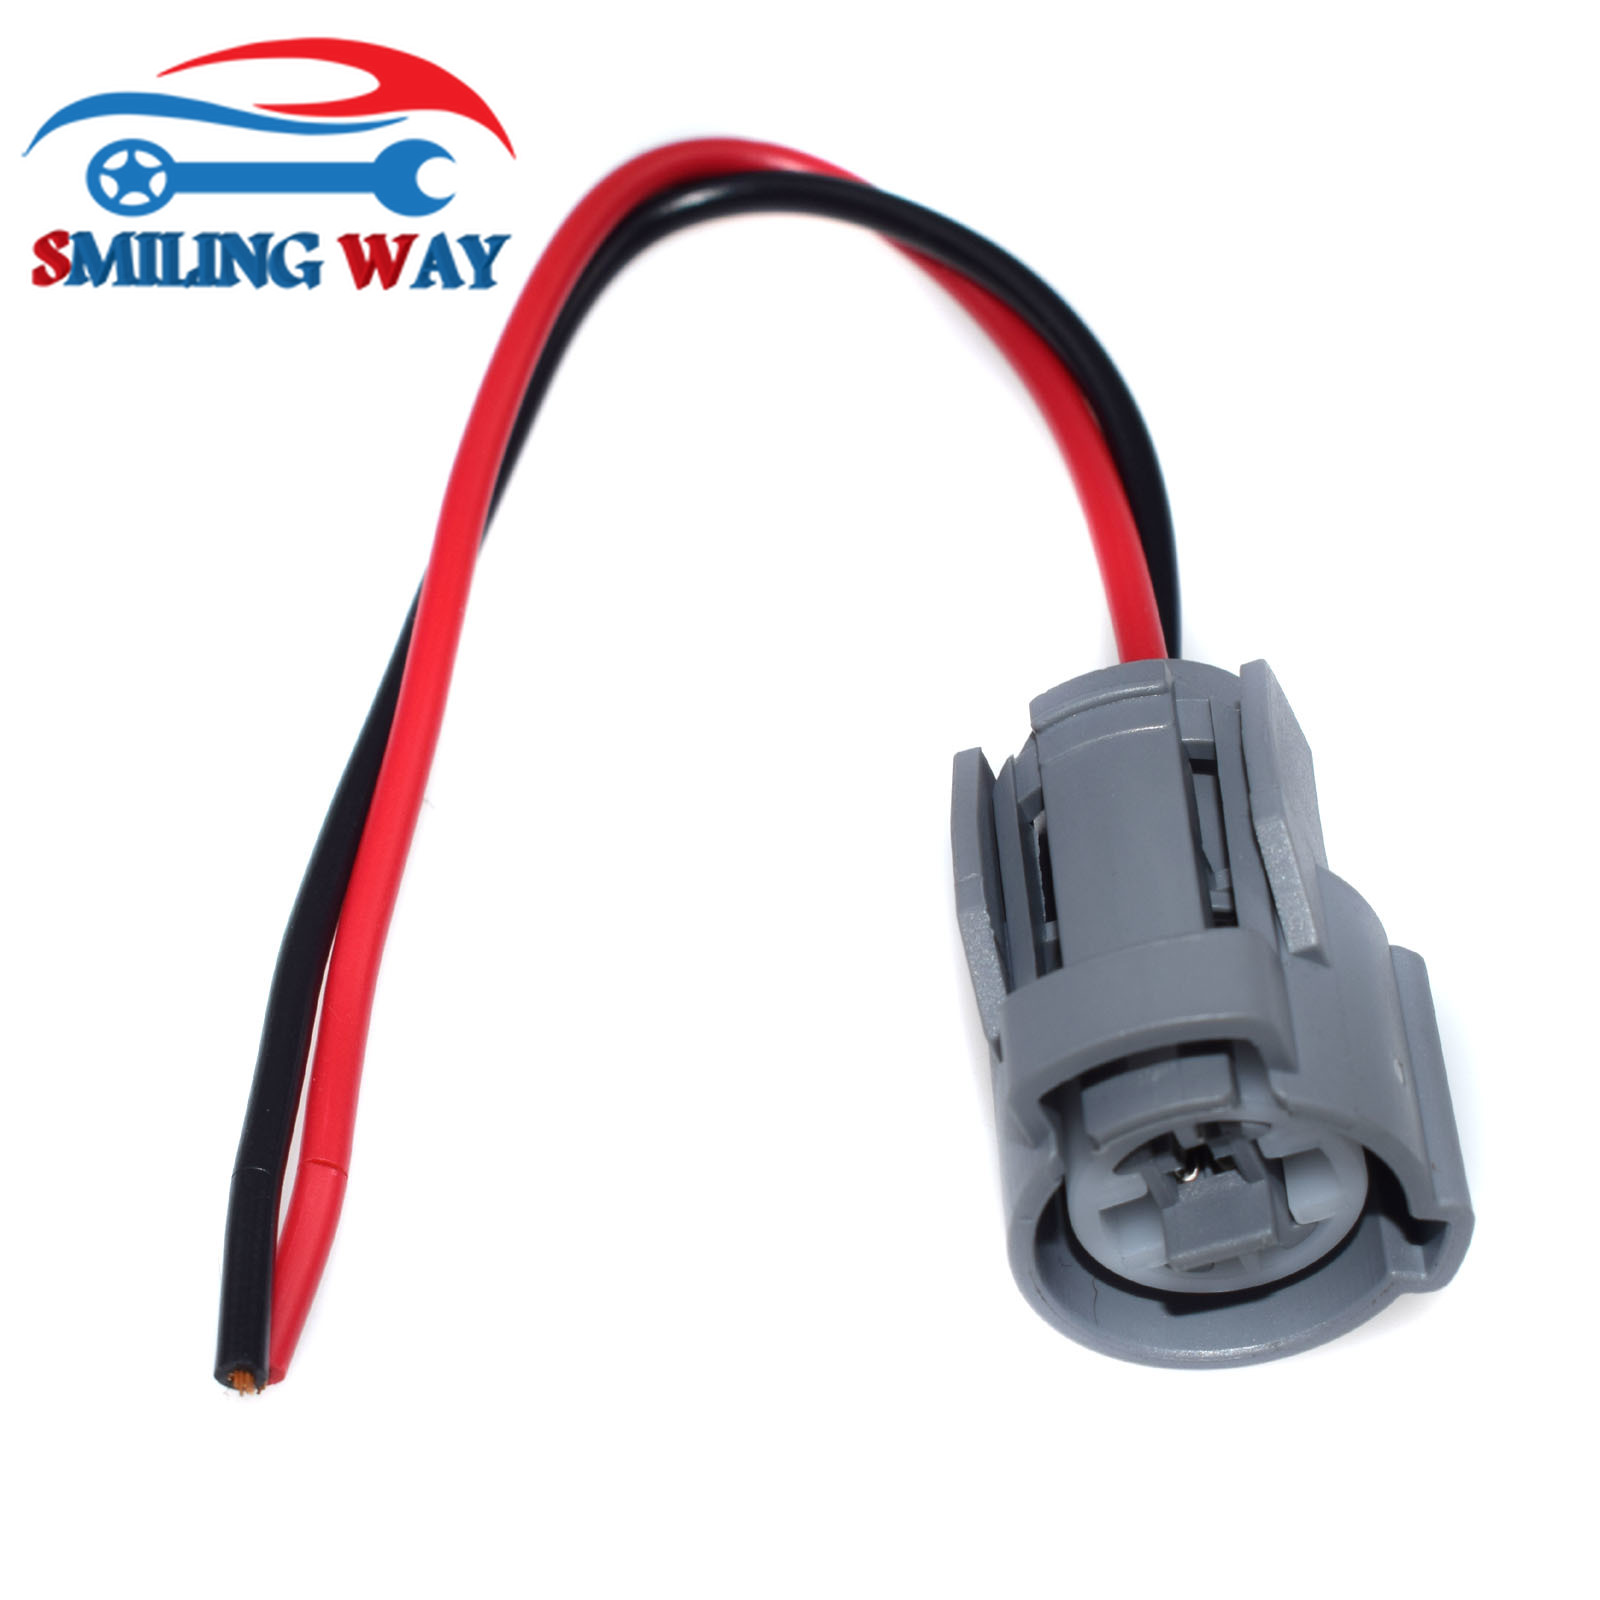 smiling way iat ect vtec sensor connector wire harness wiring pigtail plug for honda acura civic element pilot in fuel inject  [ 1600 x 1600 Pixel ]